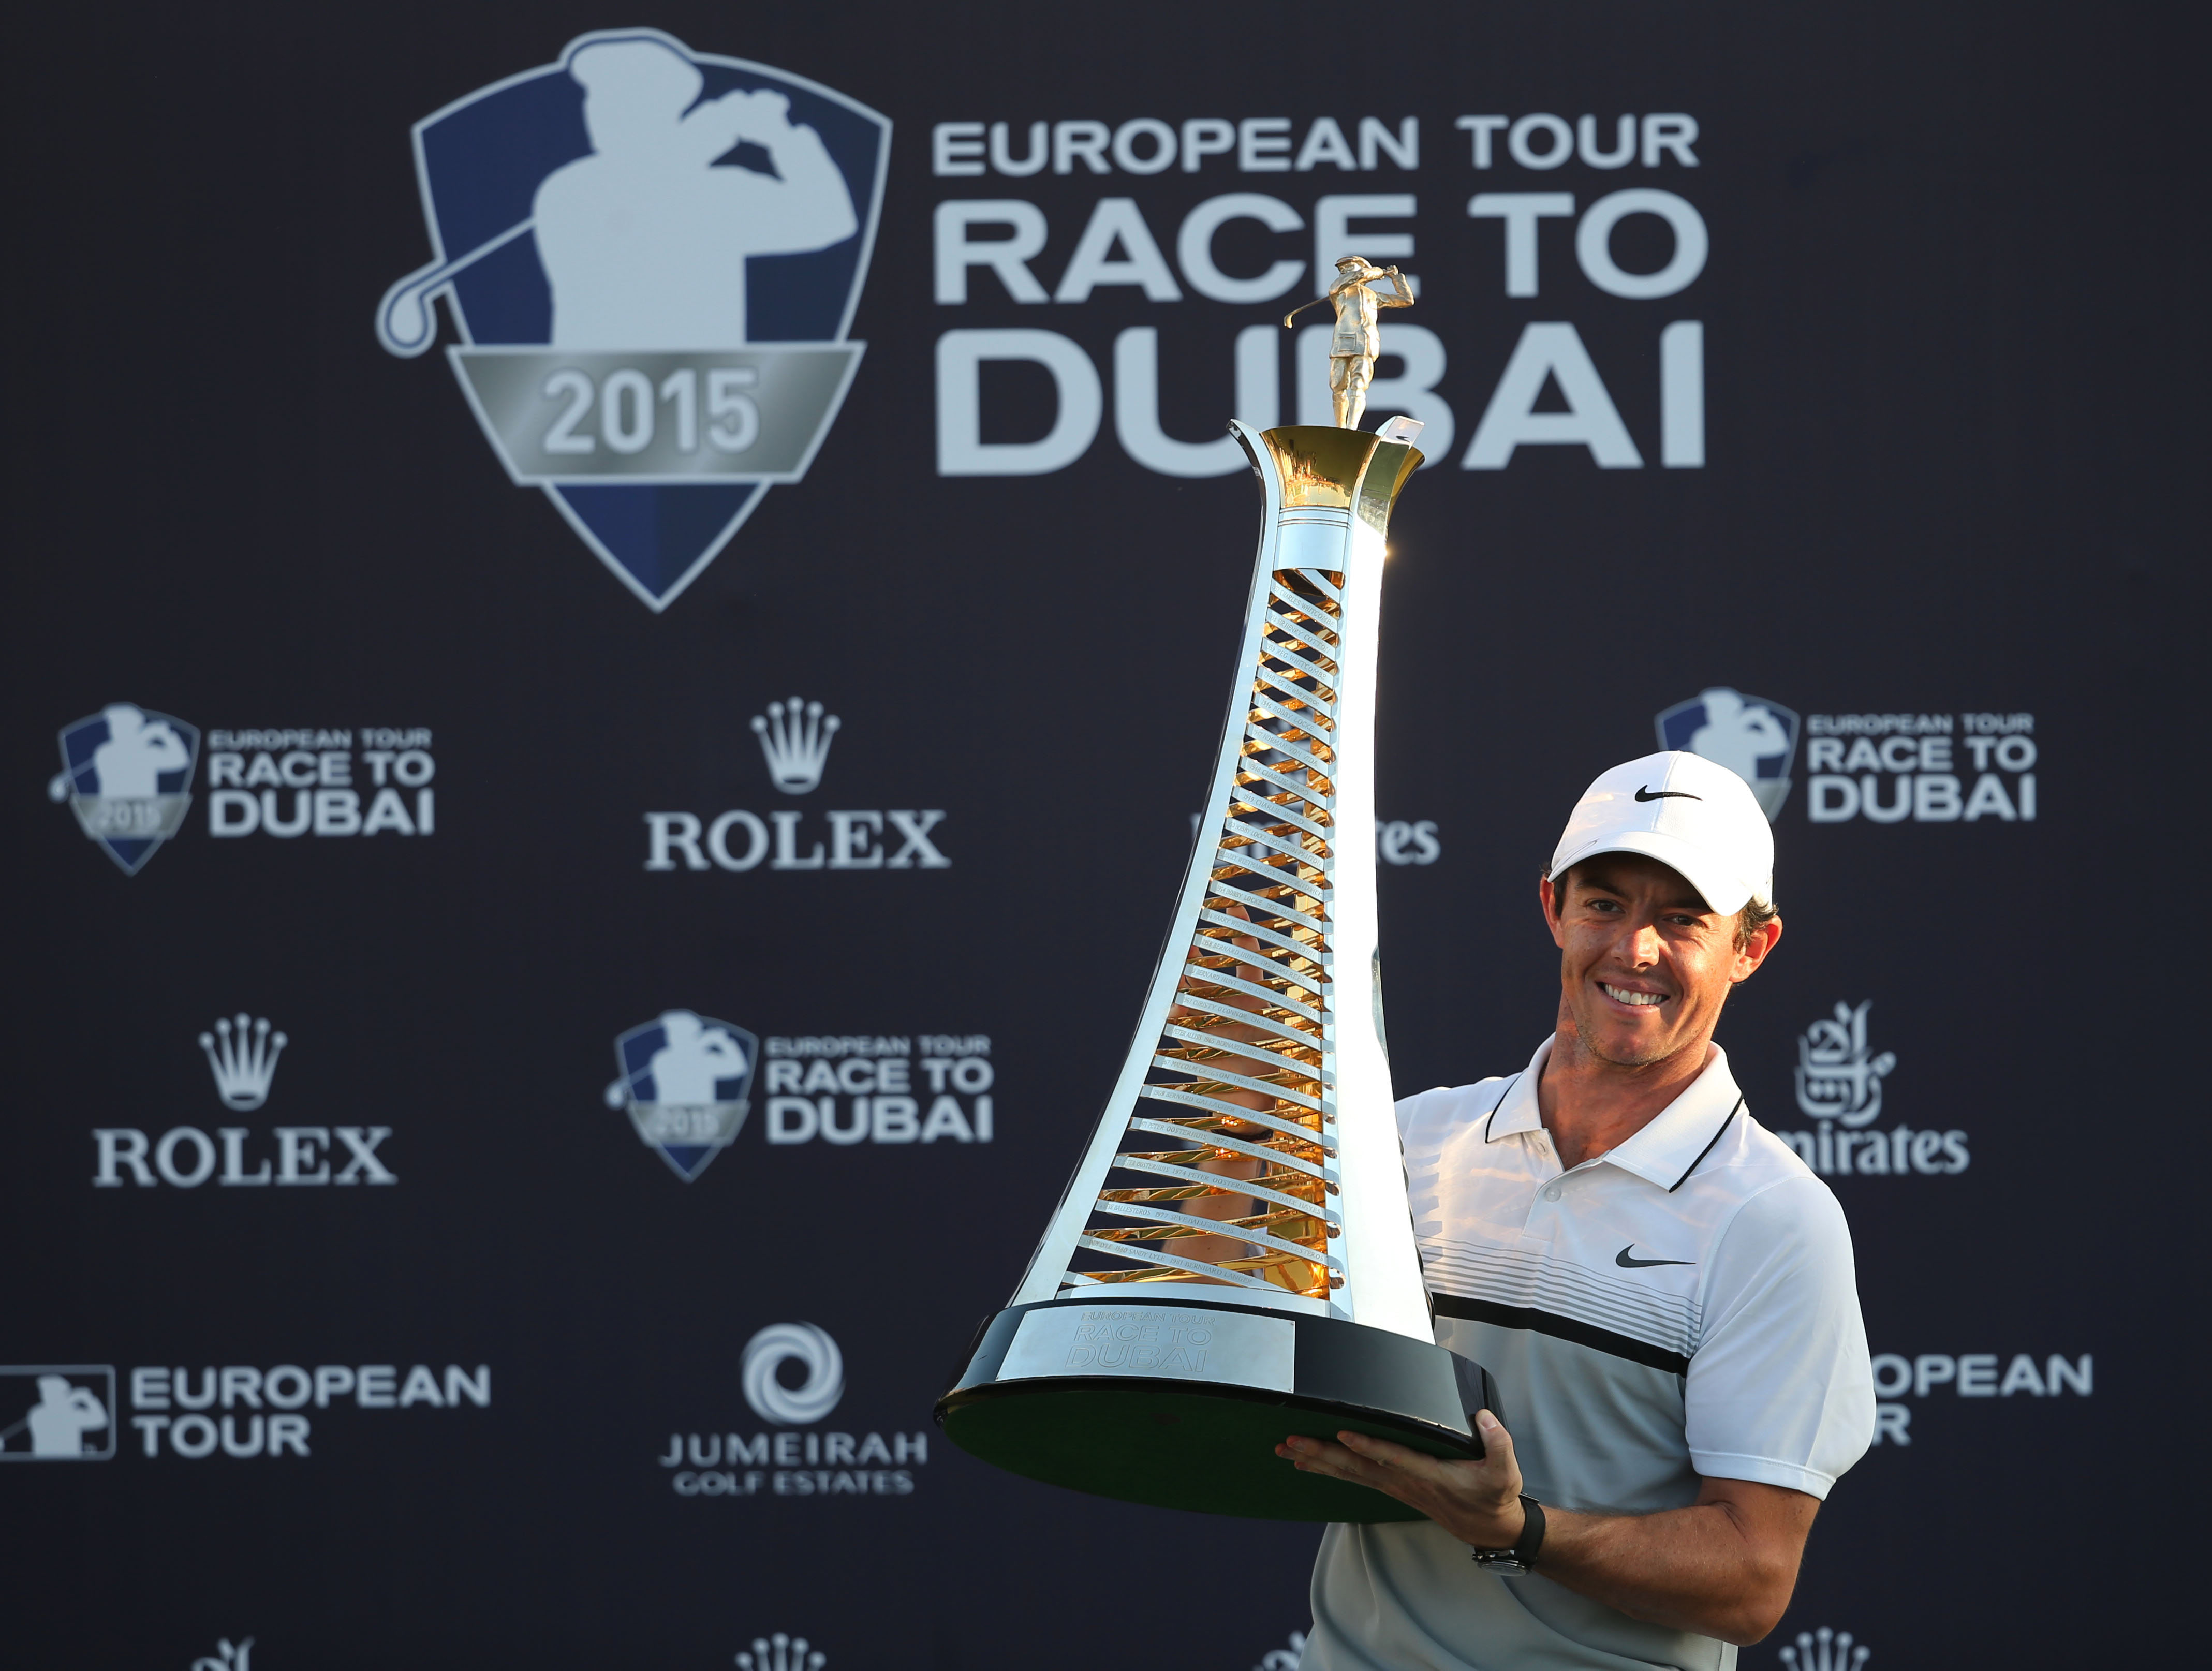 FILE - In this Sunday Nov. 22, 2015 file photo, Rory McIlroy of Northern Ireland poses with the Race to Dubai trophy after winning the final round of DP World Tour Championship golf tournament in Dubai, United Arab Emirates. Photo: AP